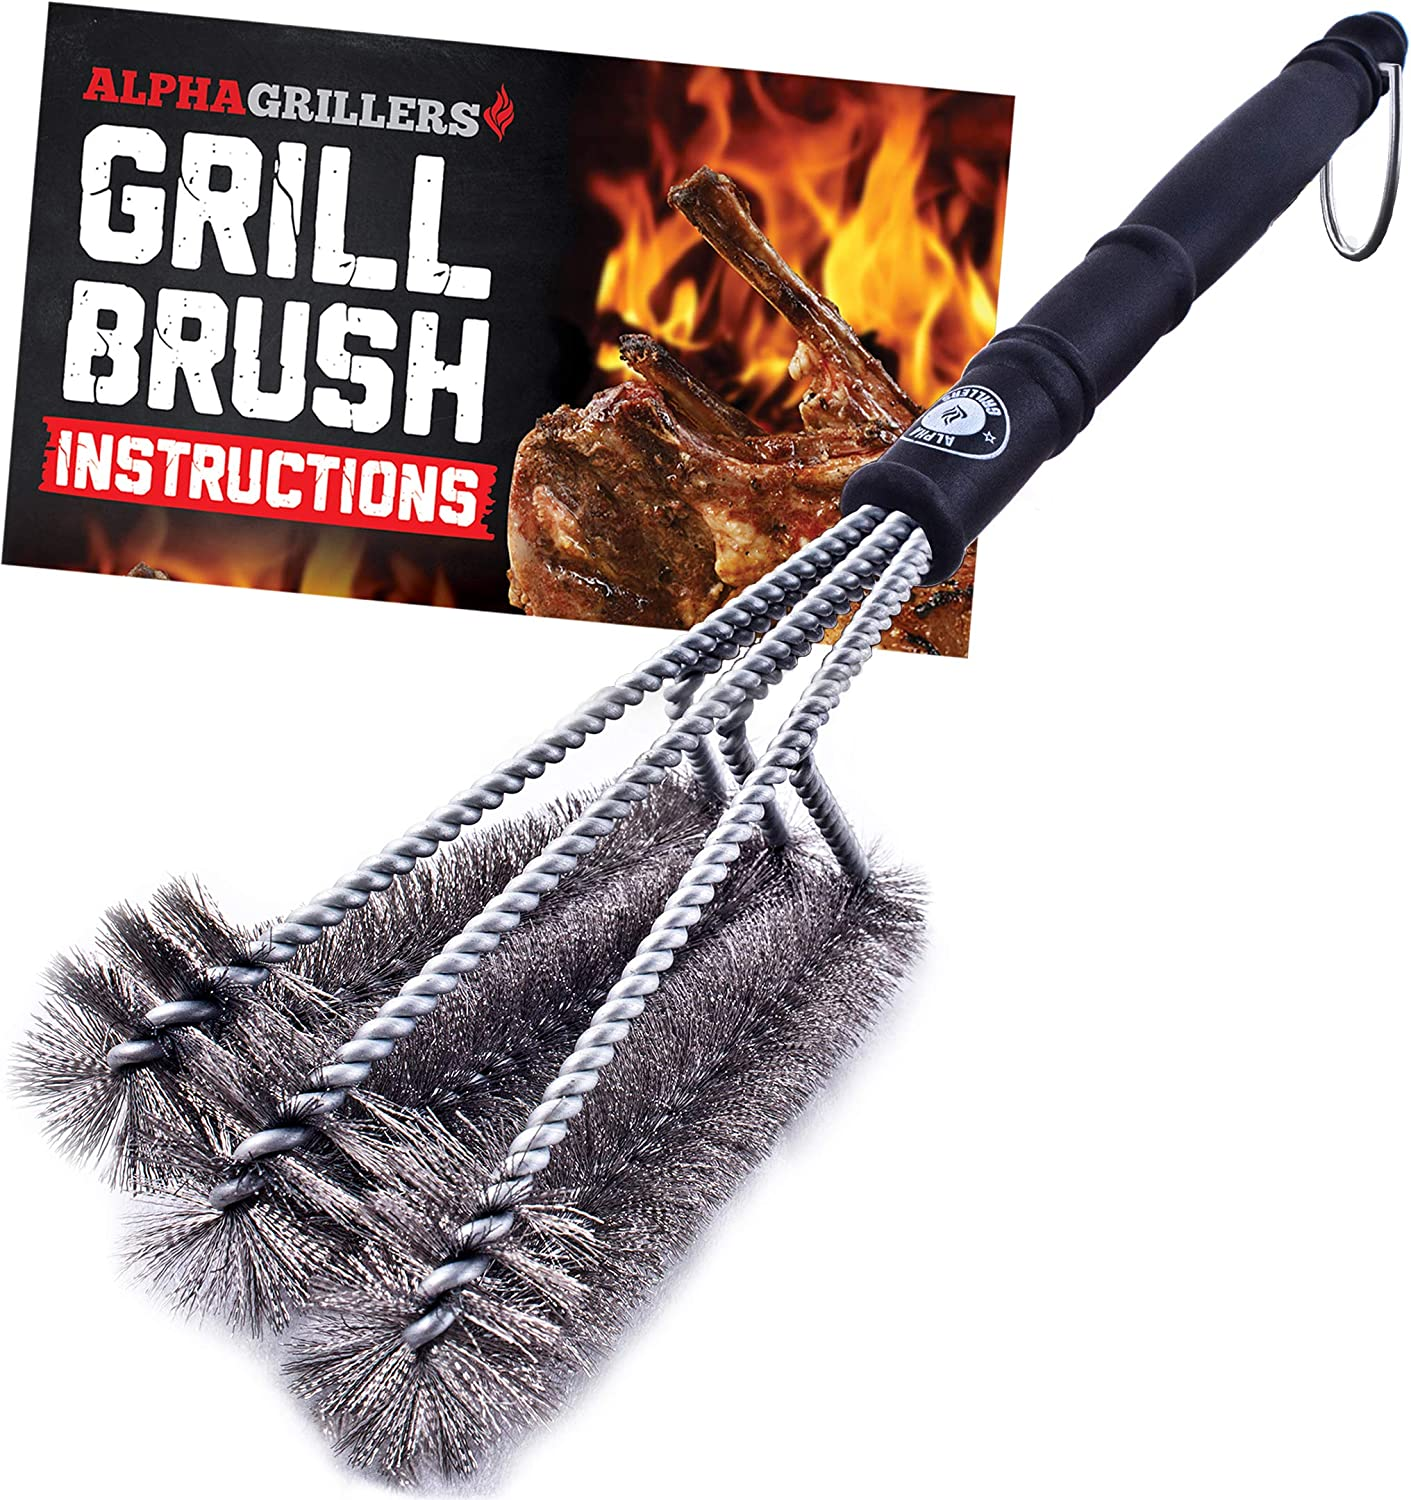 """Alpha Grillers 18"""" Grill Brush. Best BBQ Cleaner. Safe for All Grills. Durable & Effective. Stainless Steel Wire Bristles and Stiff Handle. A for Barbecue Lovers. : Garden & Outdoor"""